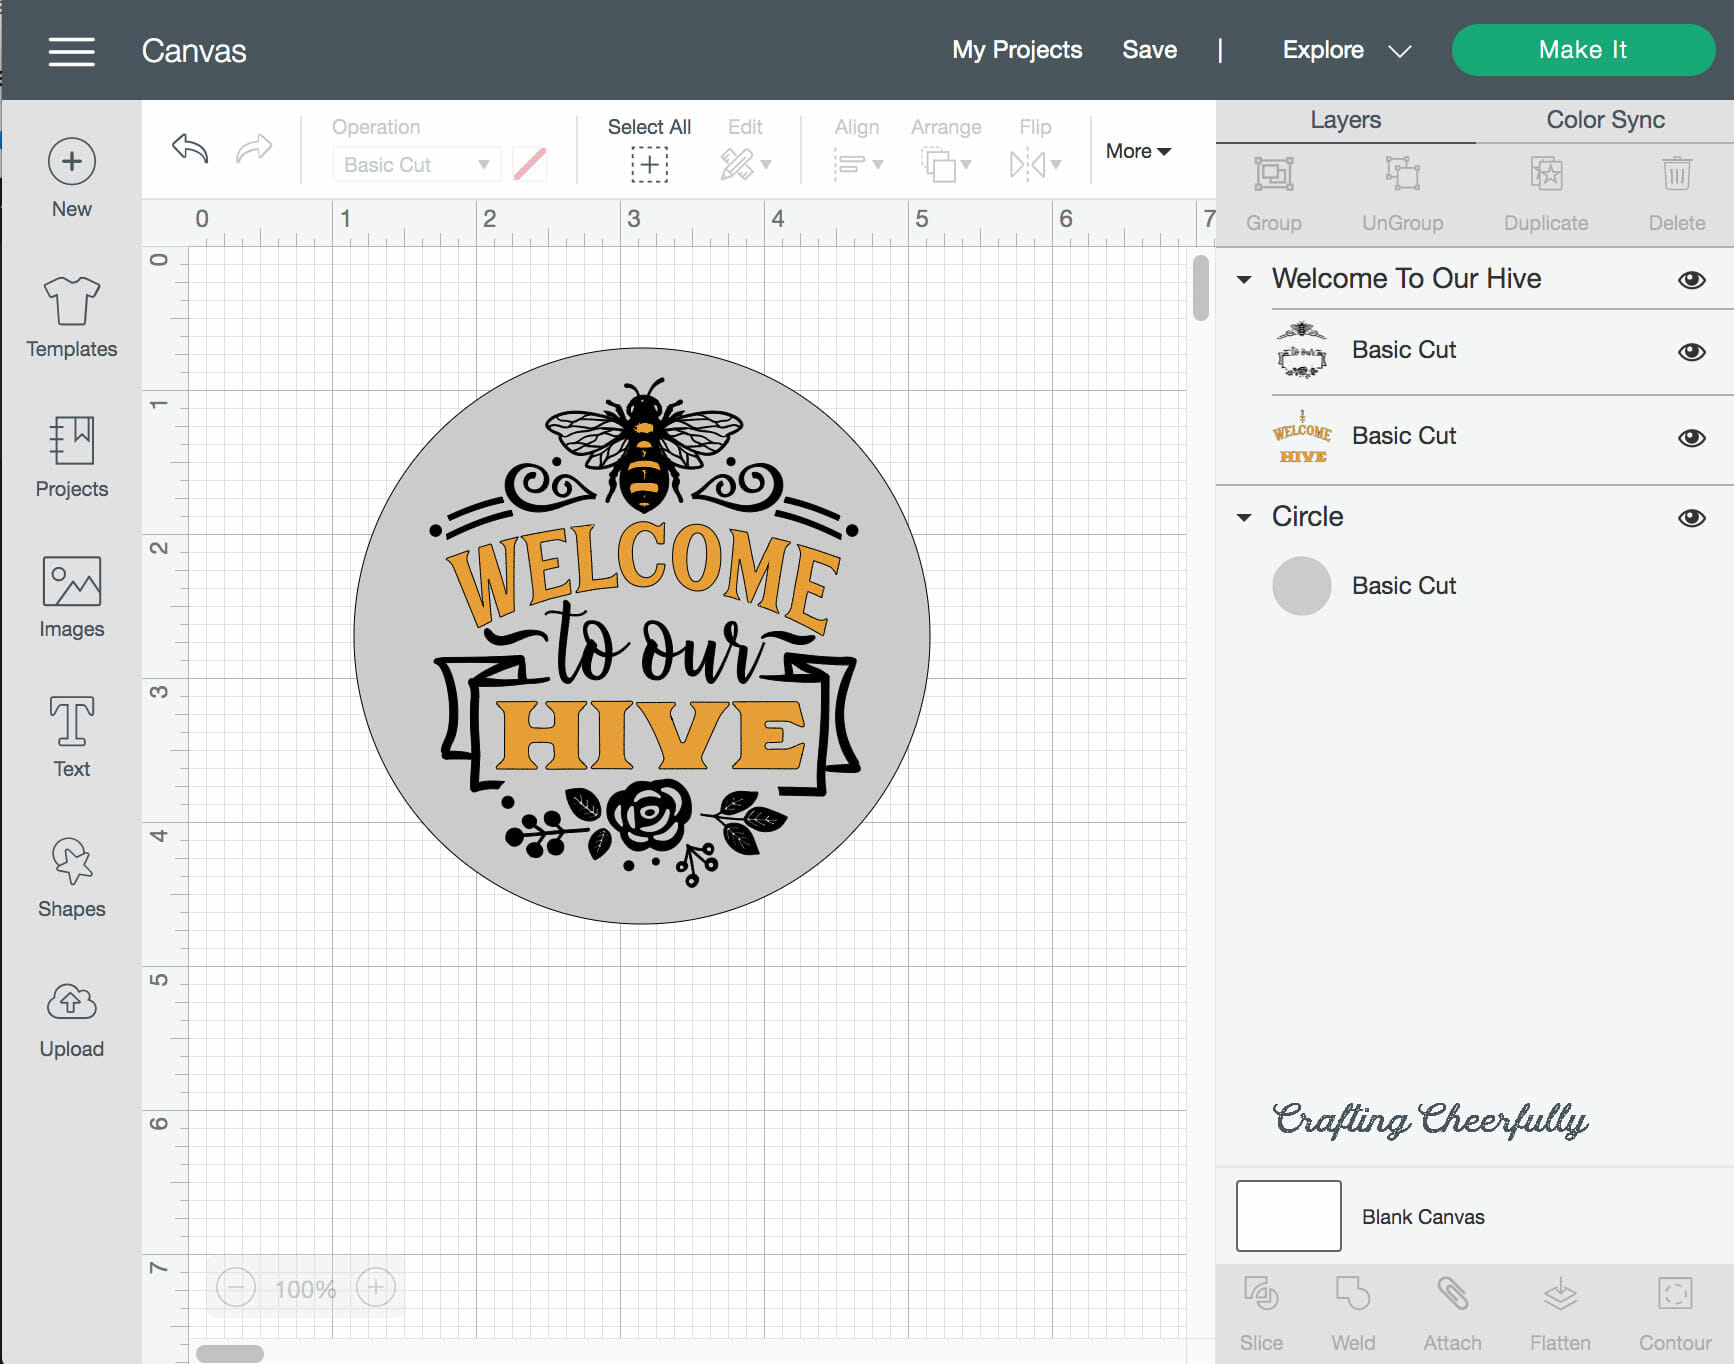 Welcome to our Hive image in Cricut Design Space